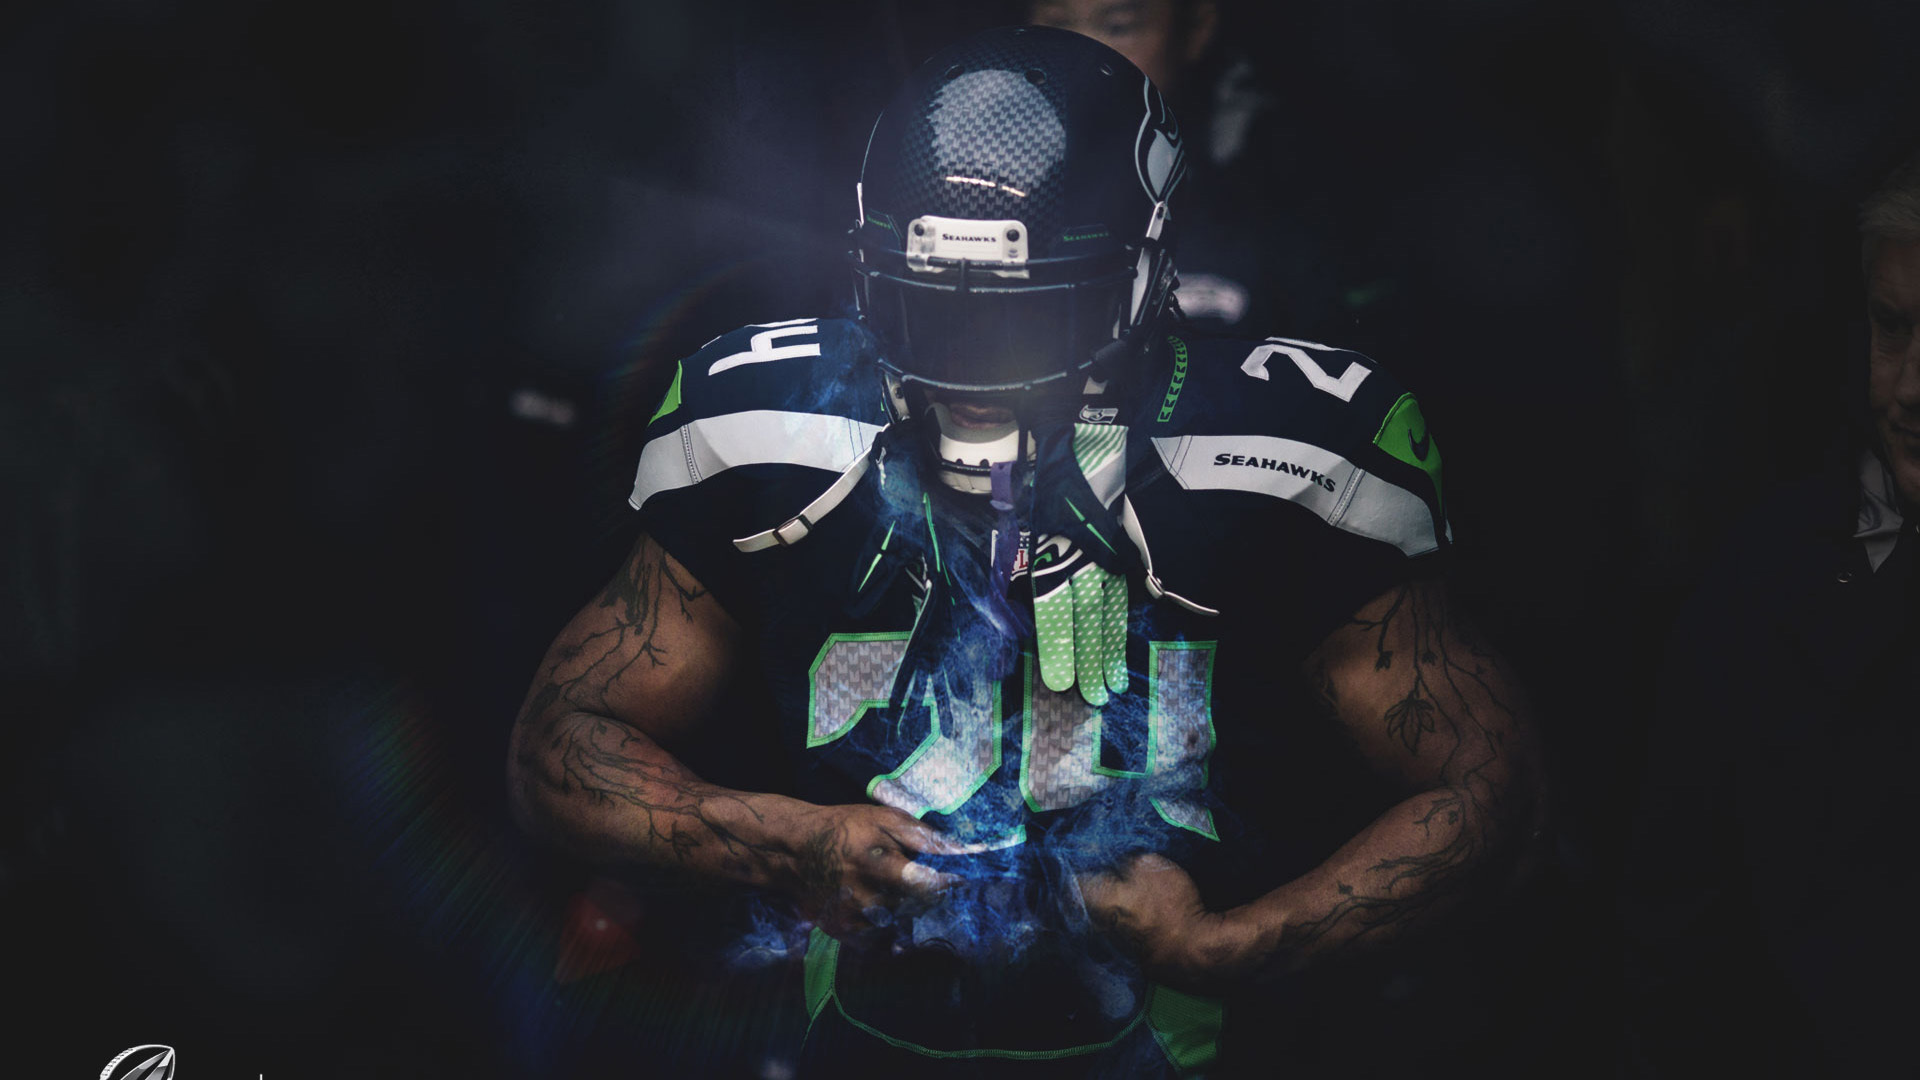 Seattle Seahawks High Quality Wallpapers